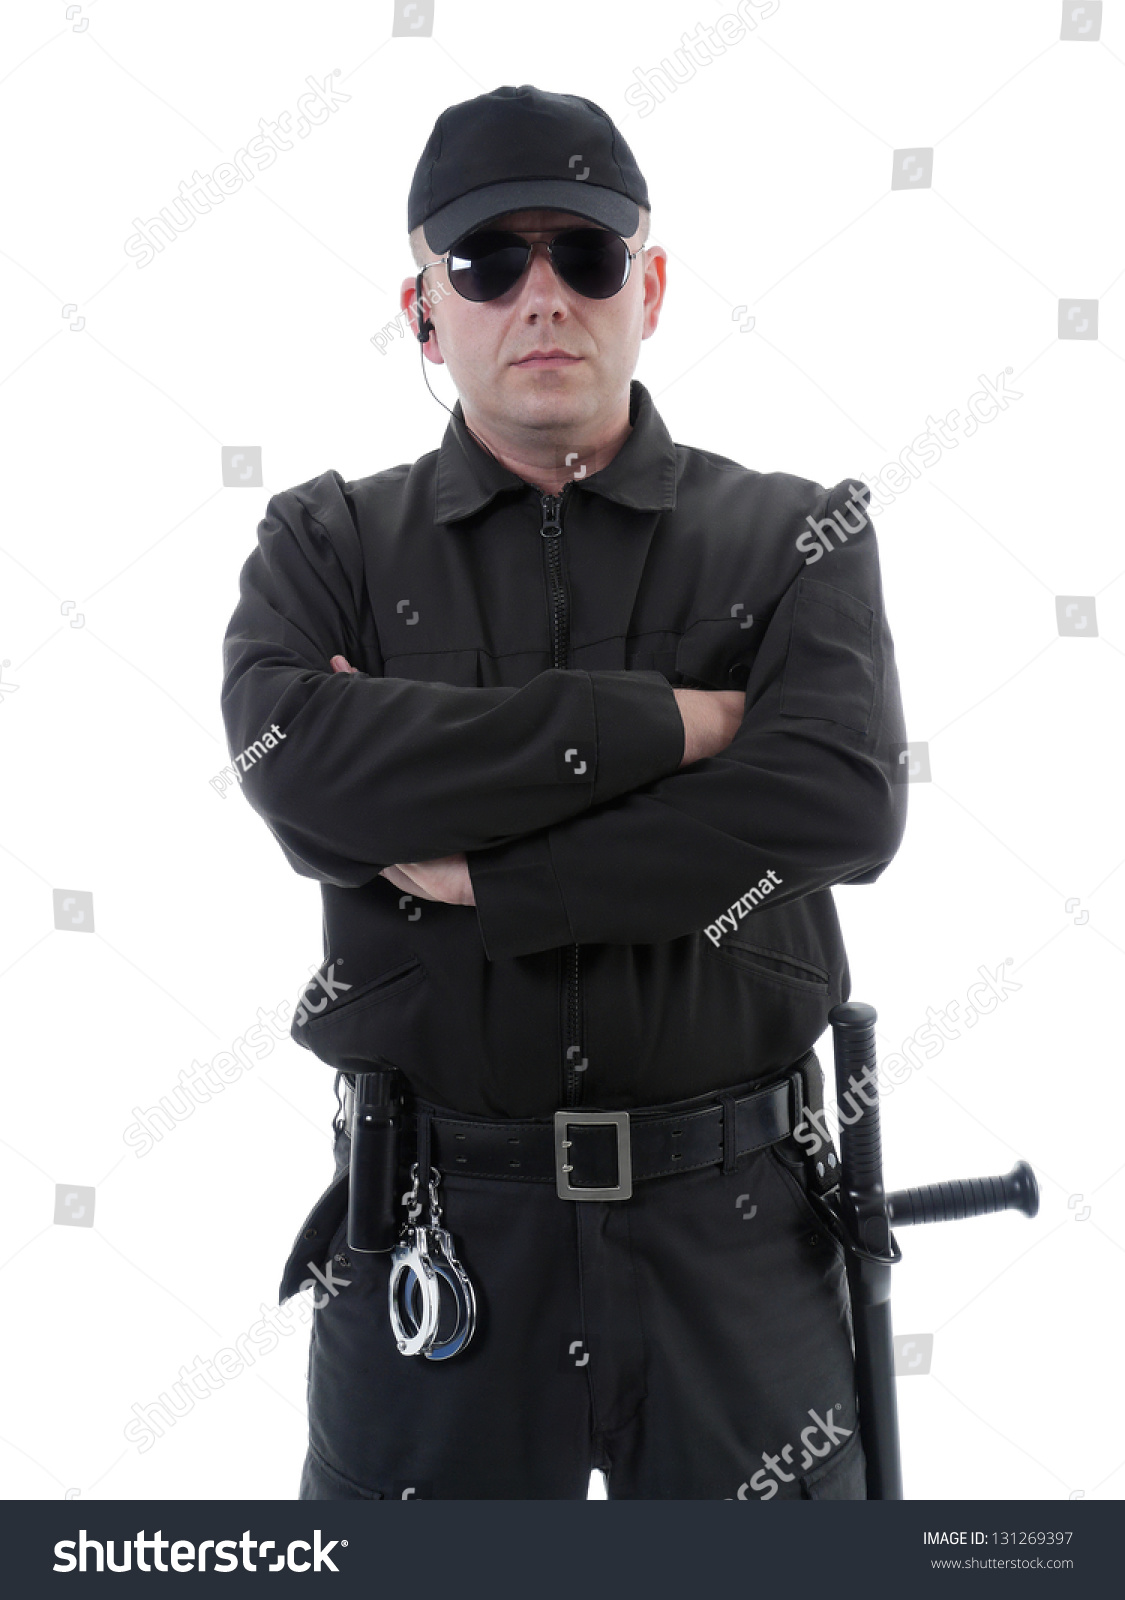 stock-photo-policeman-or-security-guard-wearing-black-uniform-and-glasses-standing-confidently-with-folded-arms-131269397.jpg